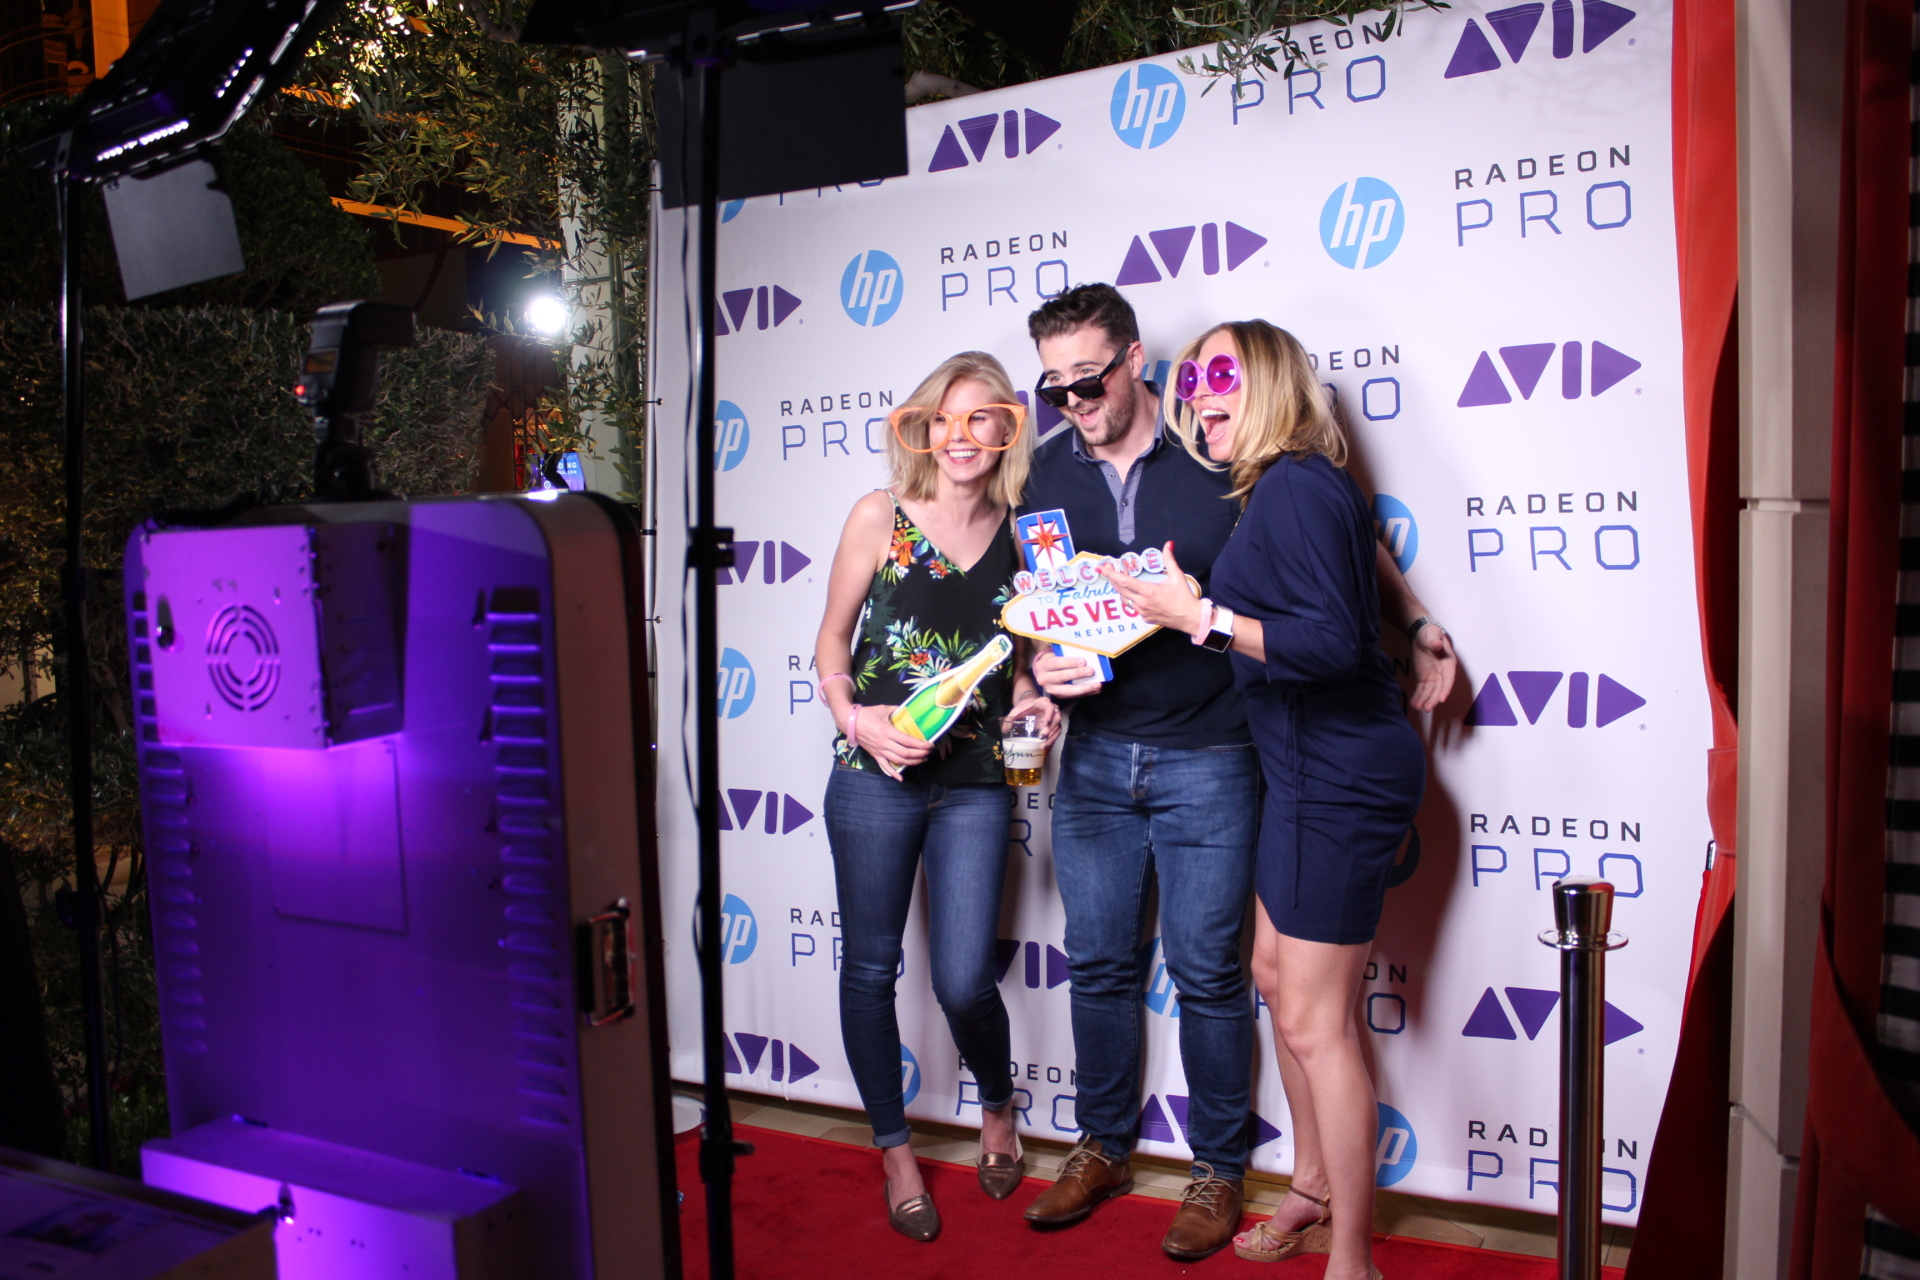 Las Vegas Photo Booths for Rent - Step & Repeat